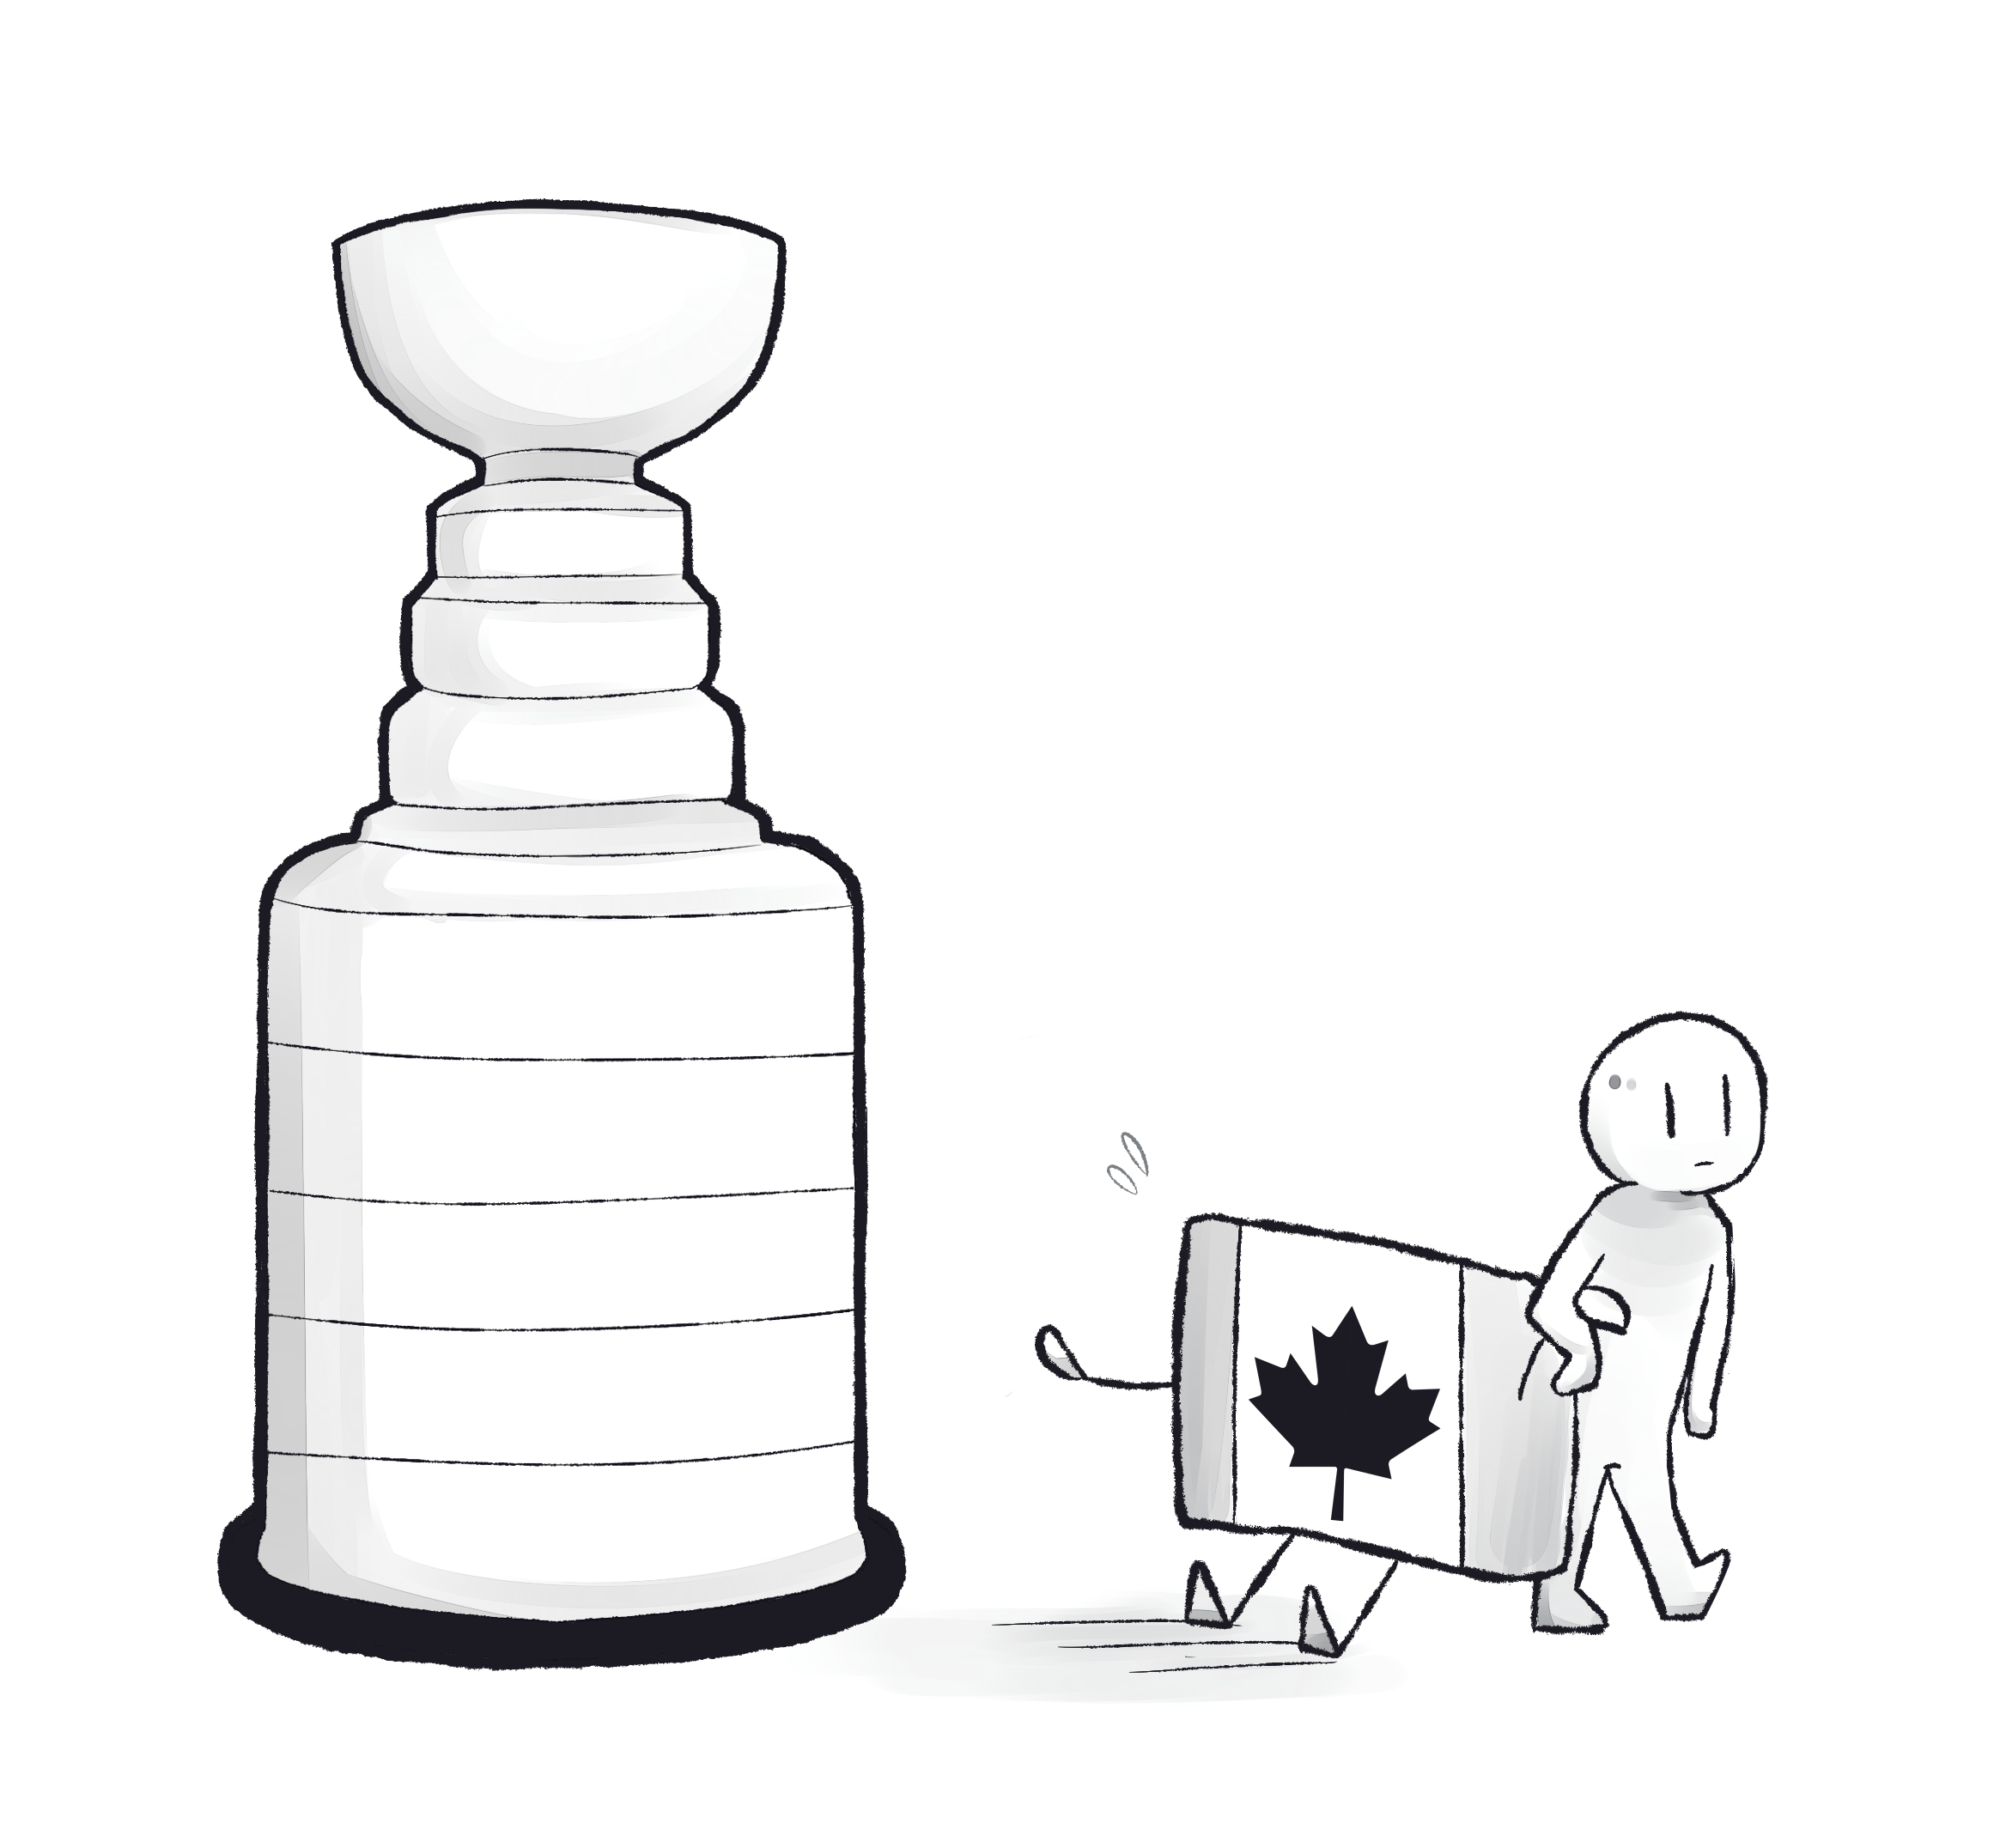 No, Canada: What's happened to Canada's game?